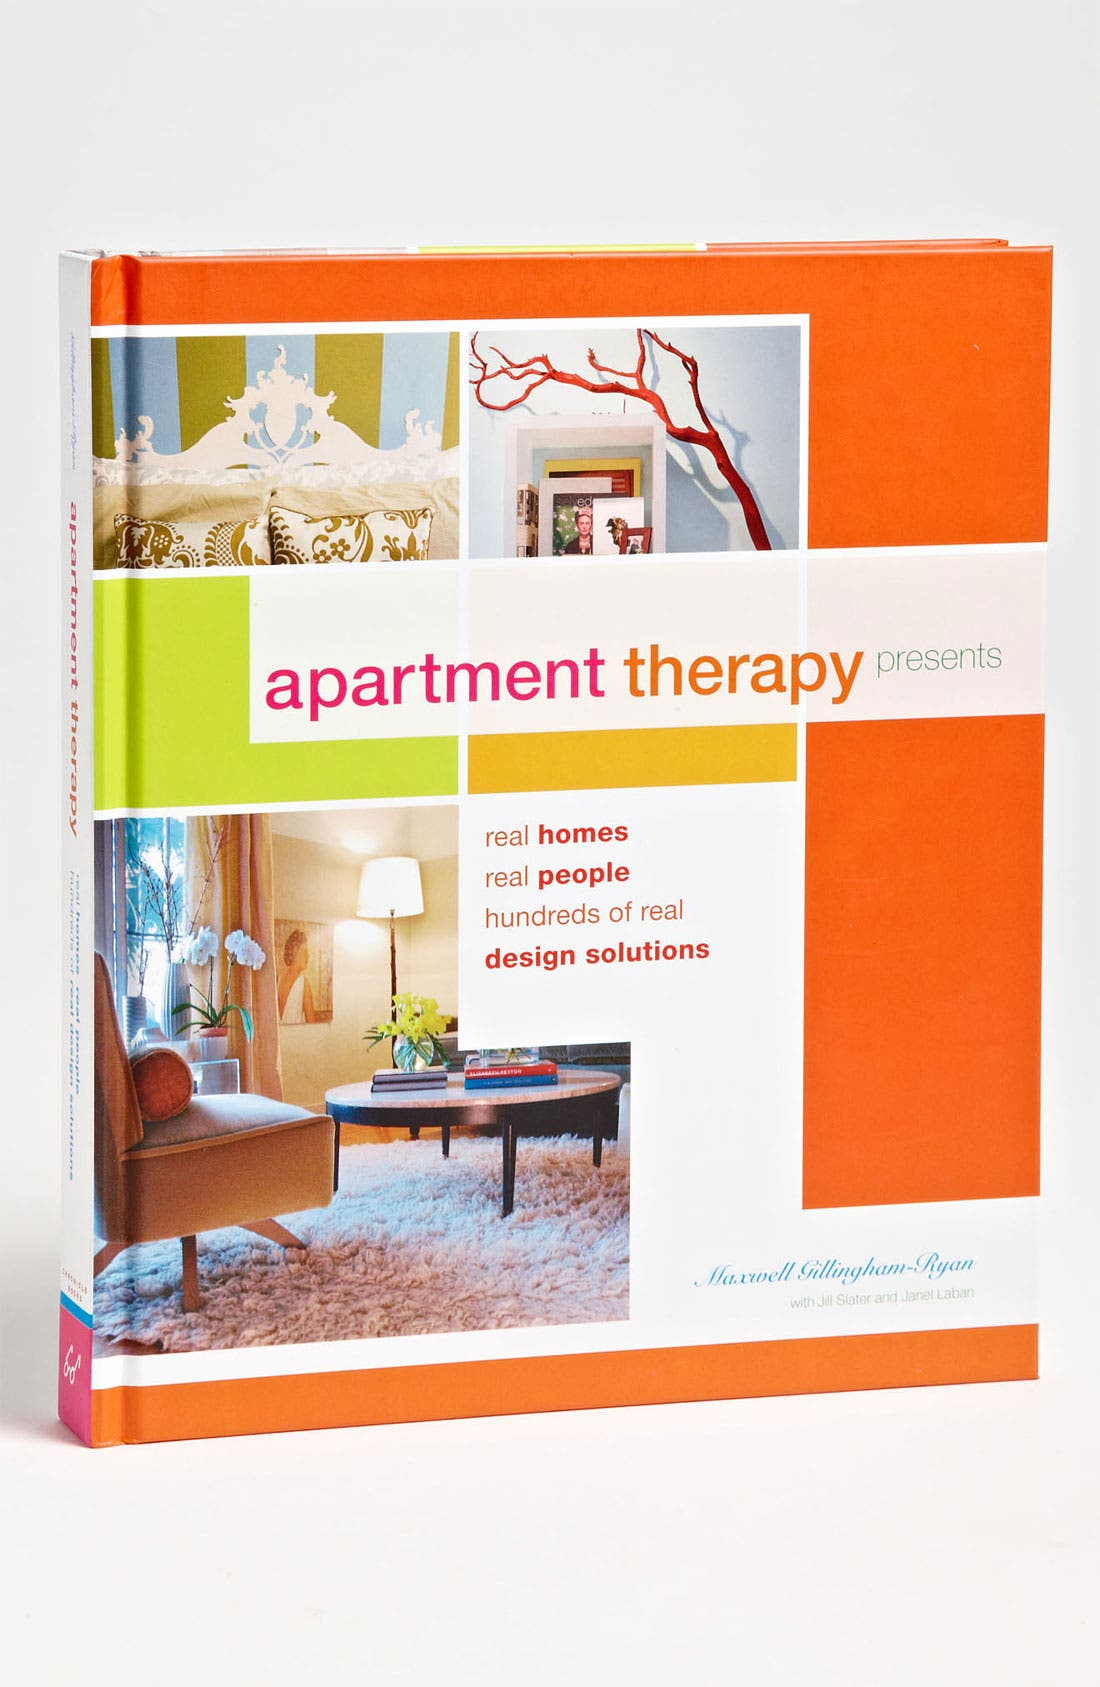 Alternate Image 1 Selected - 'Apartment Therapy Presents: Real Homes, Real People, Hundreds of Real Design Solutions' Book